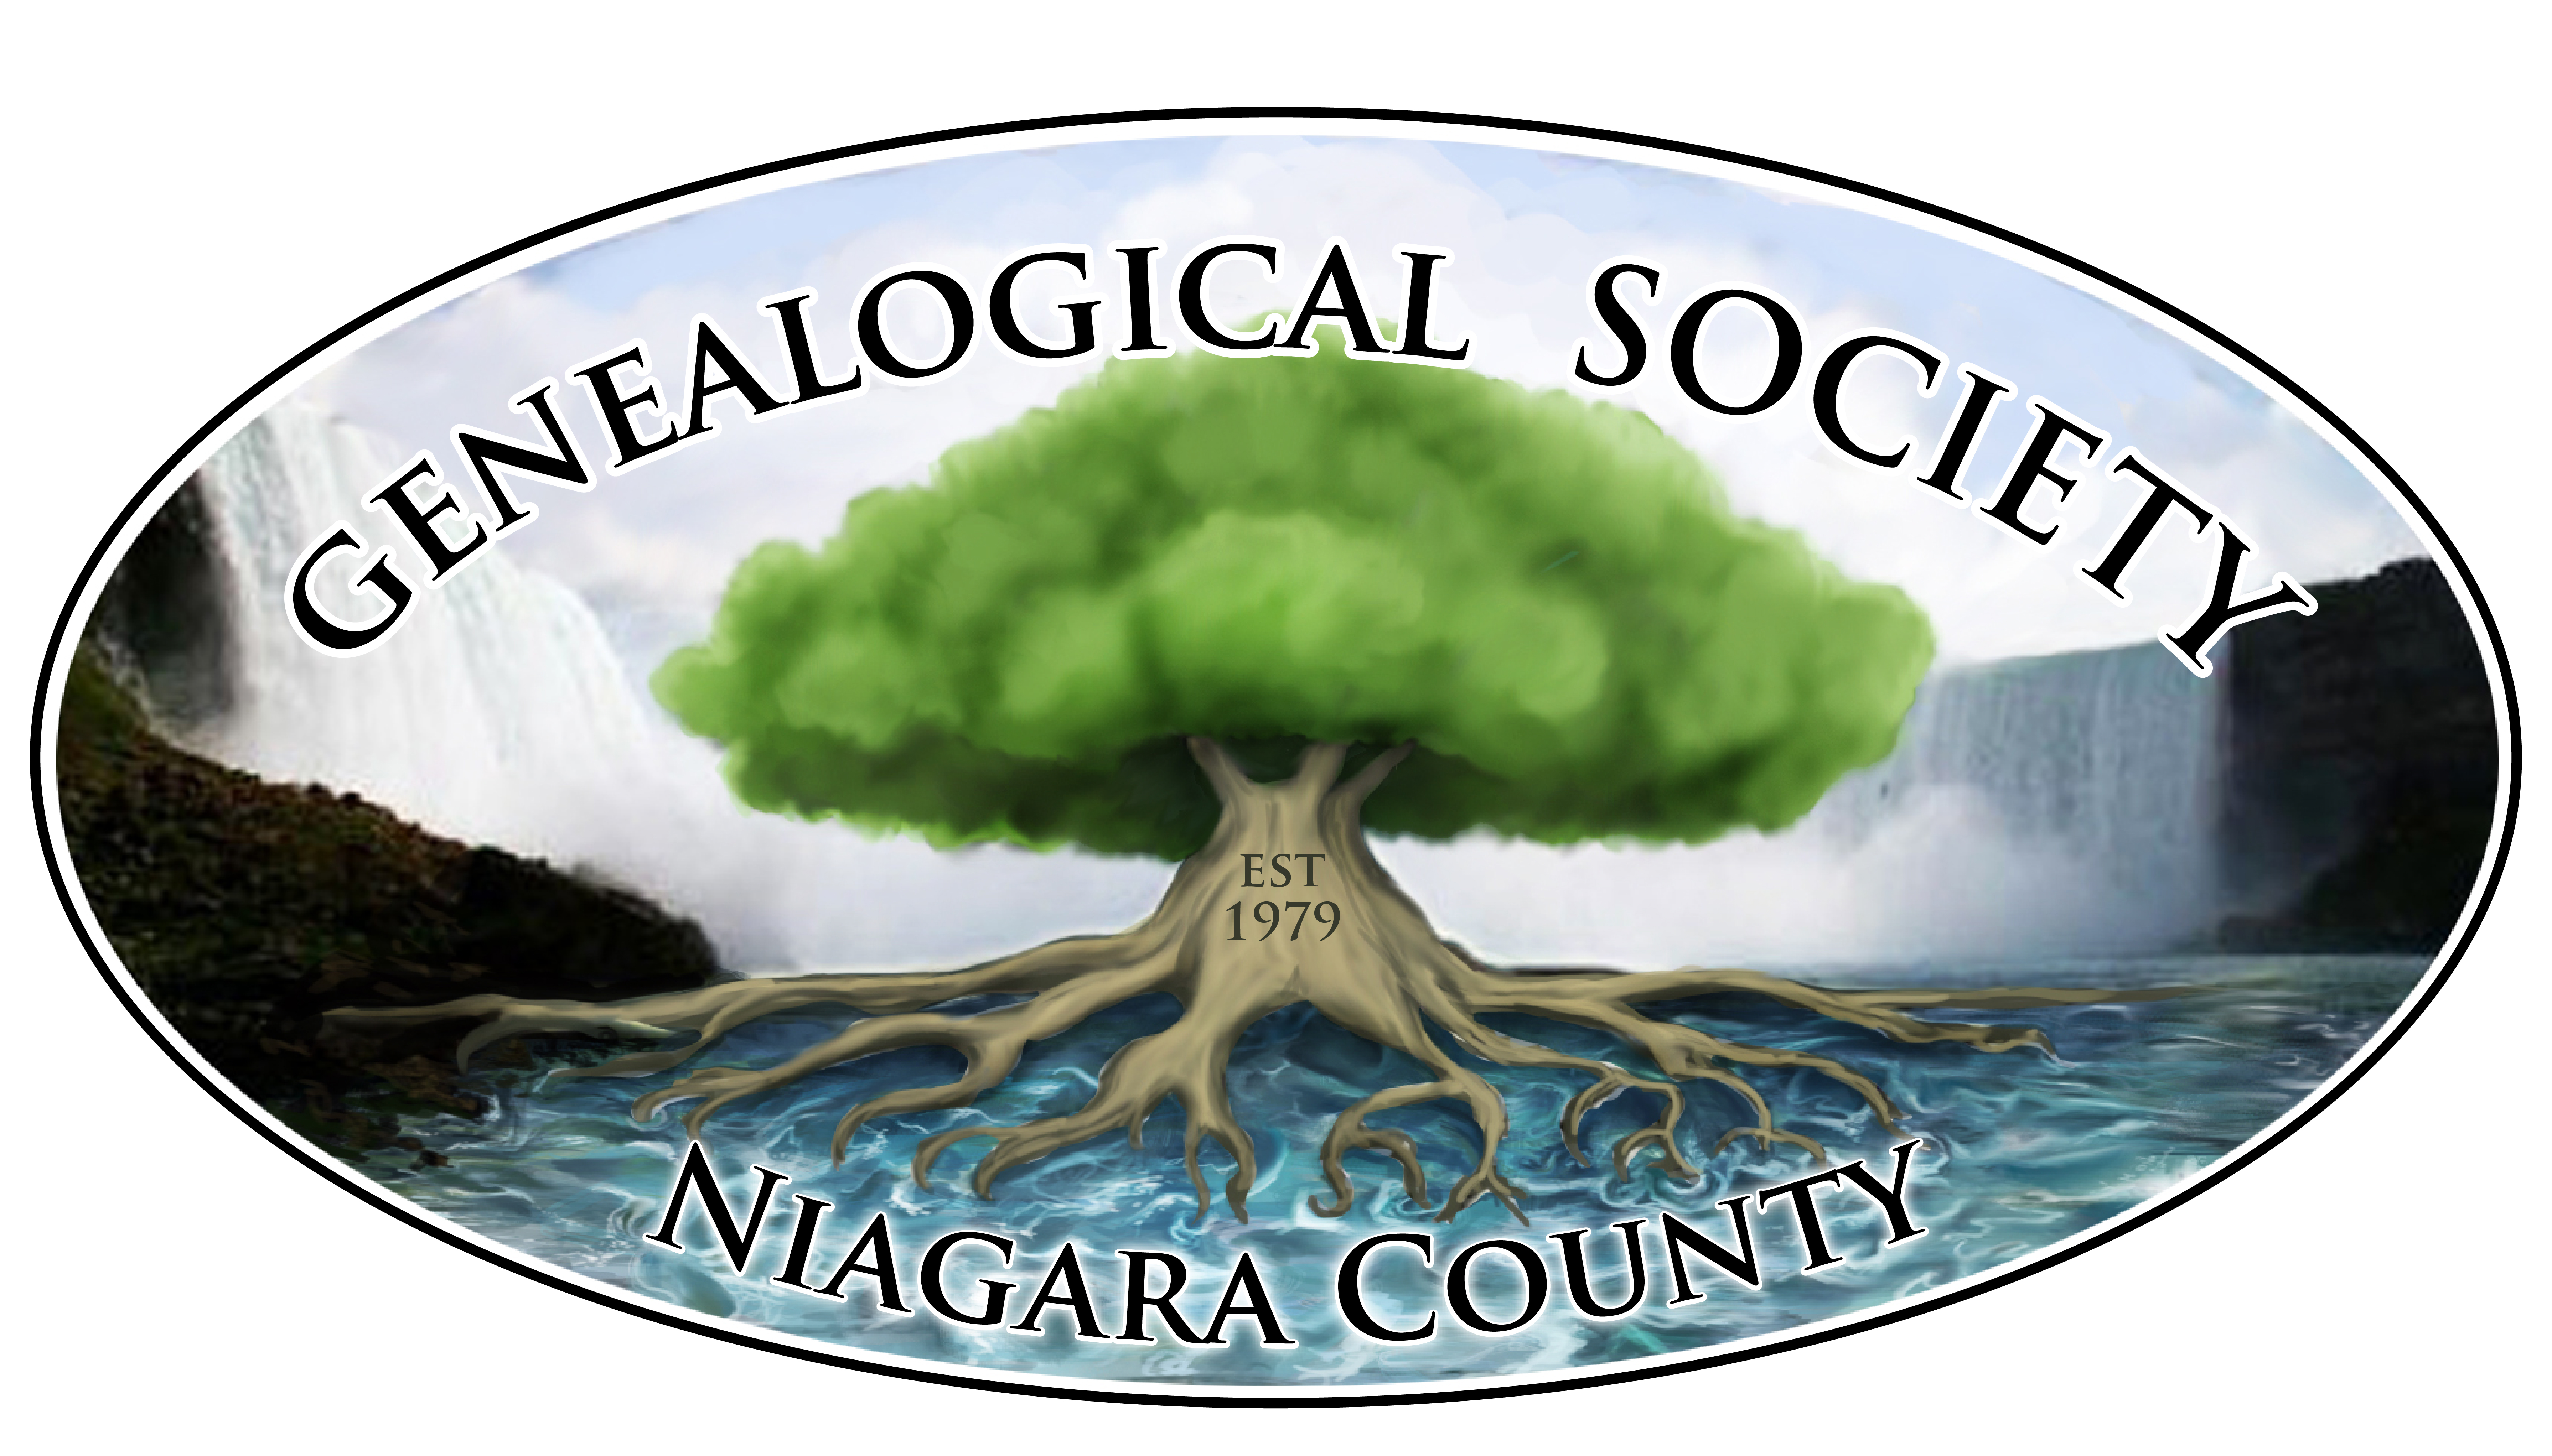 genealogical society-logo-ver-2